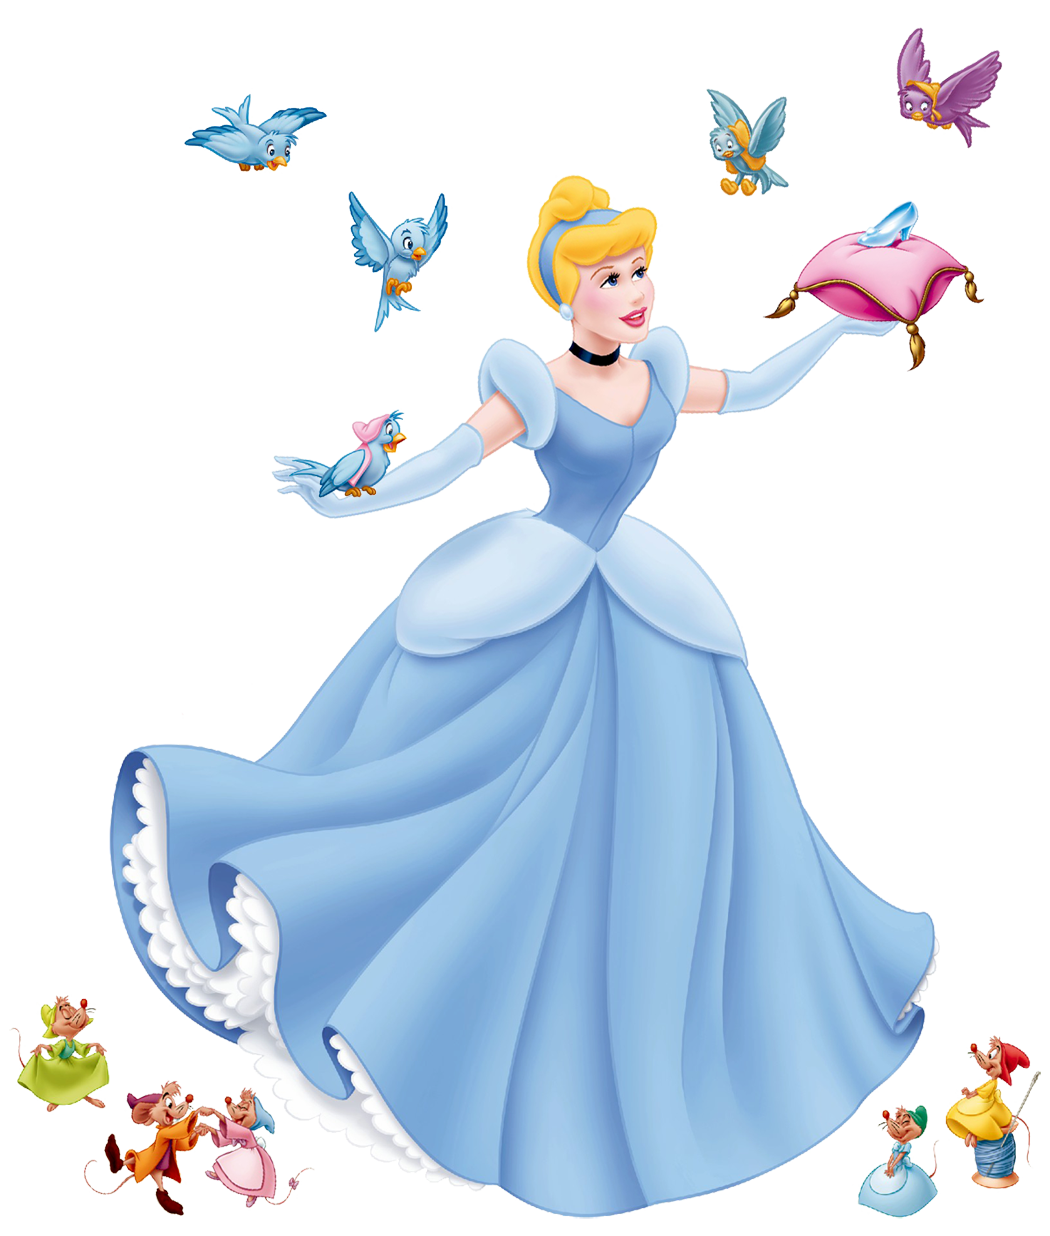 graphic free library Download free hq png. Goat clipart cinderella